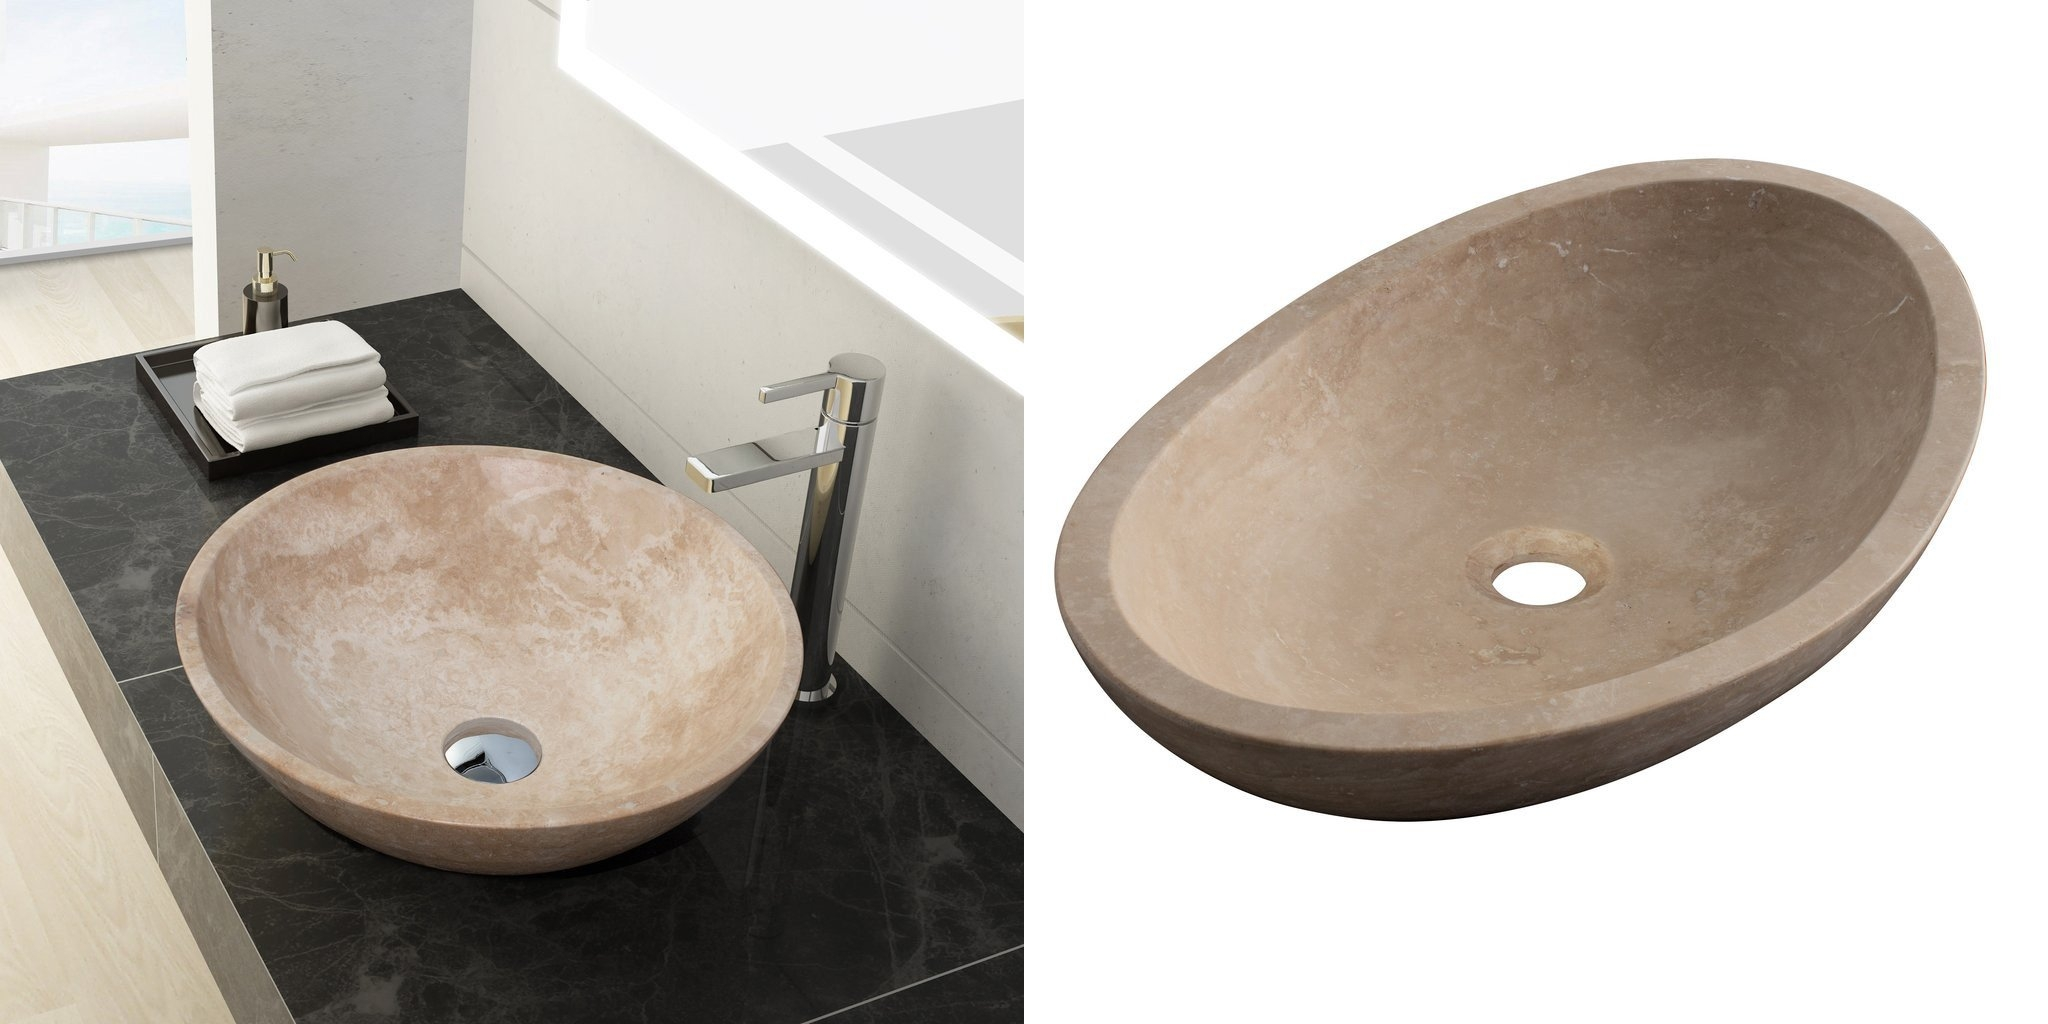 Oval Vessel Sinks